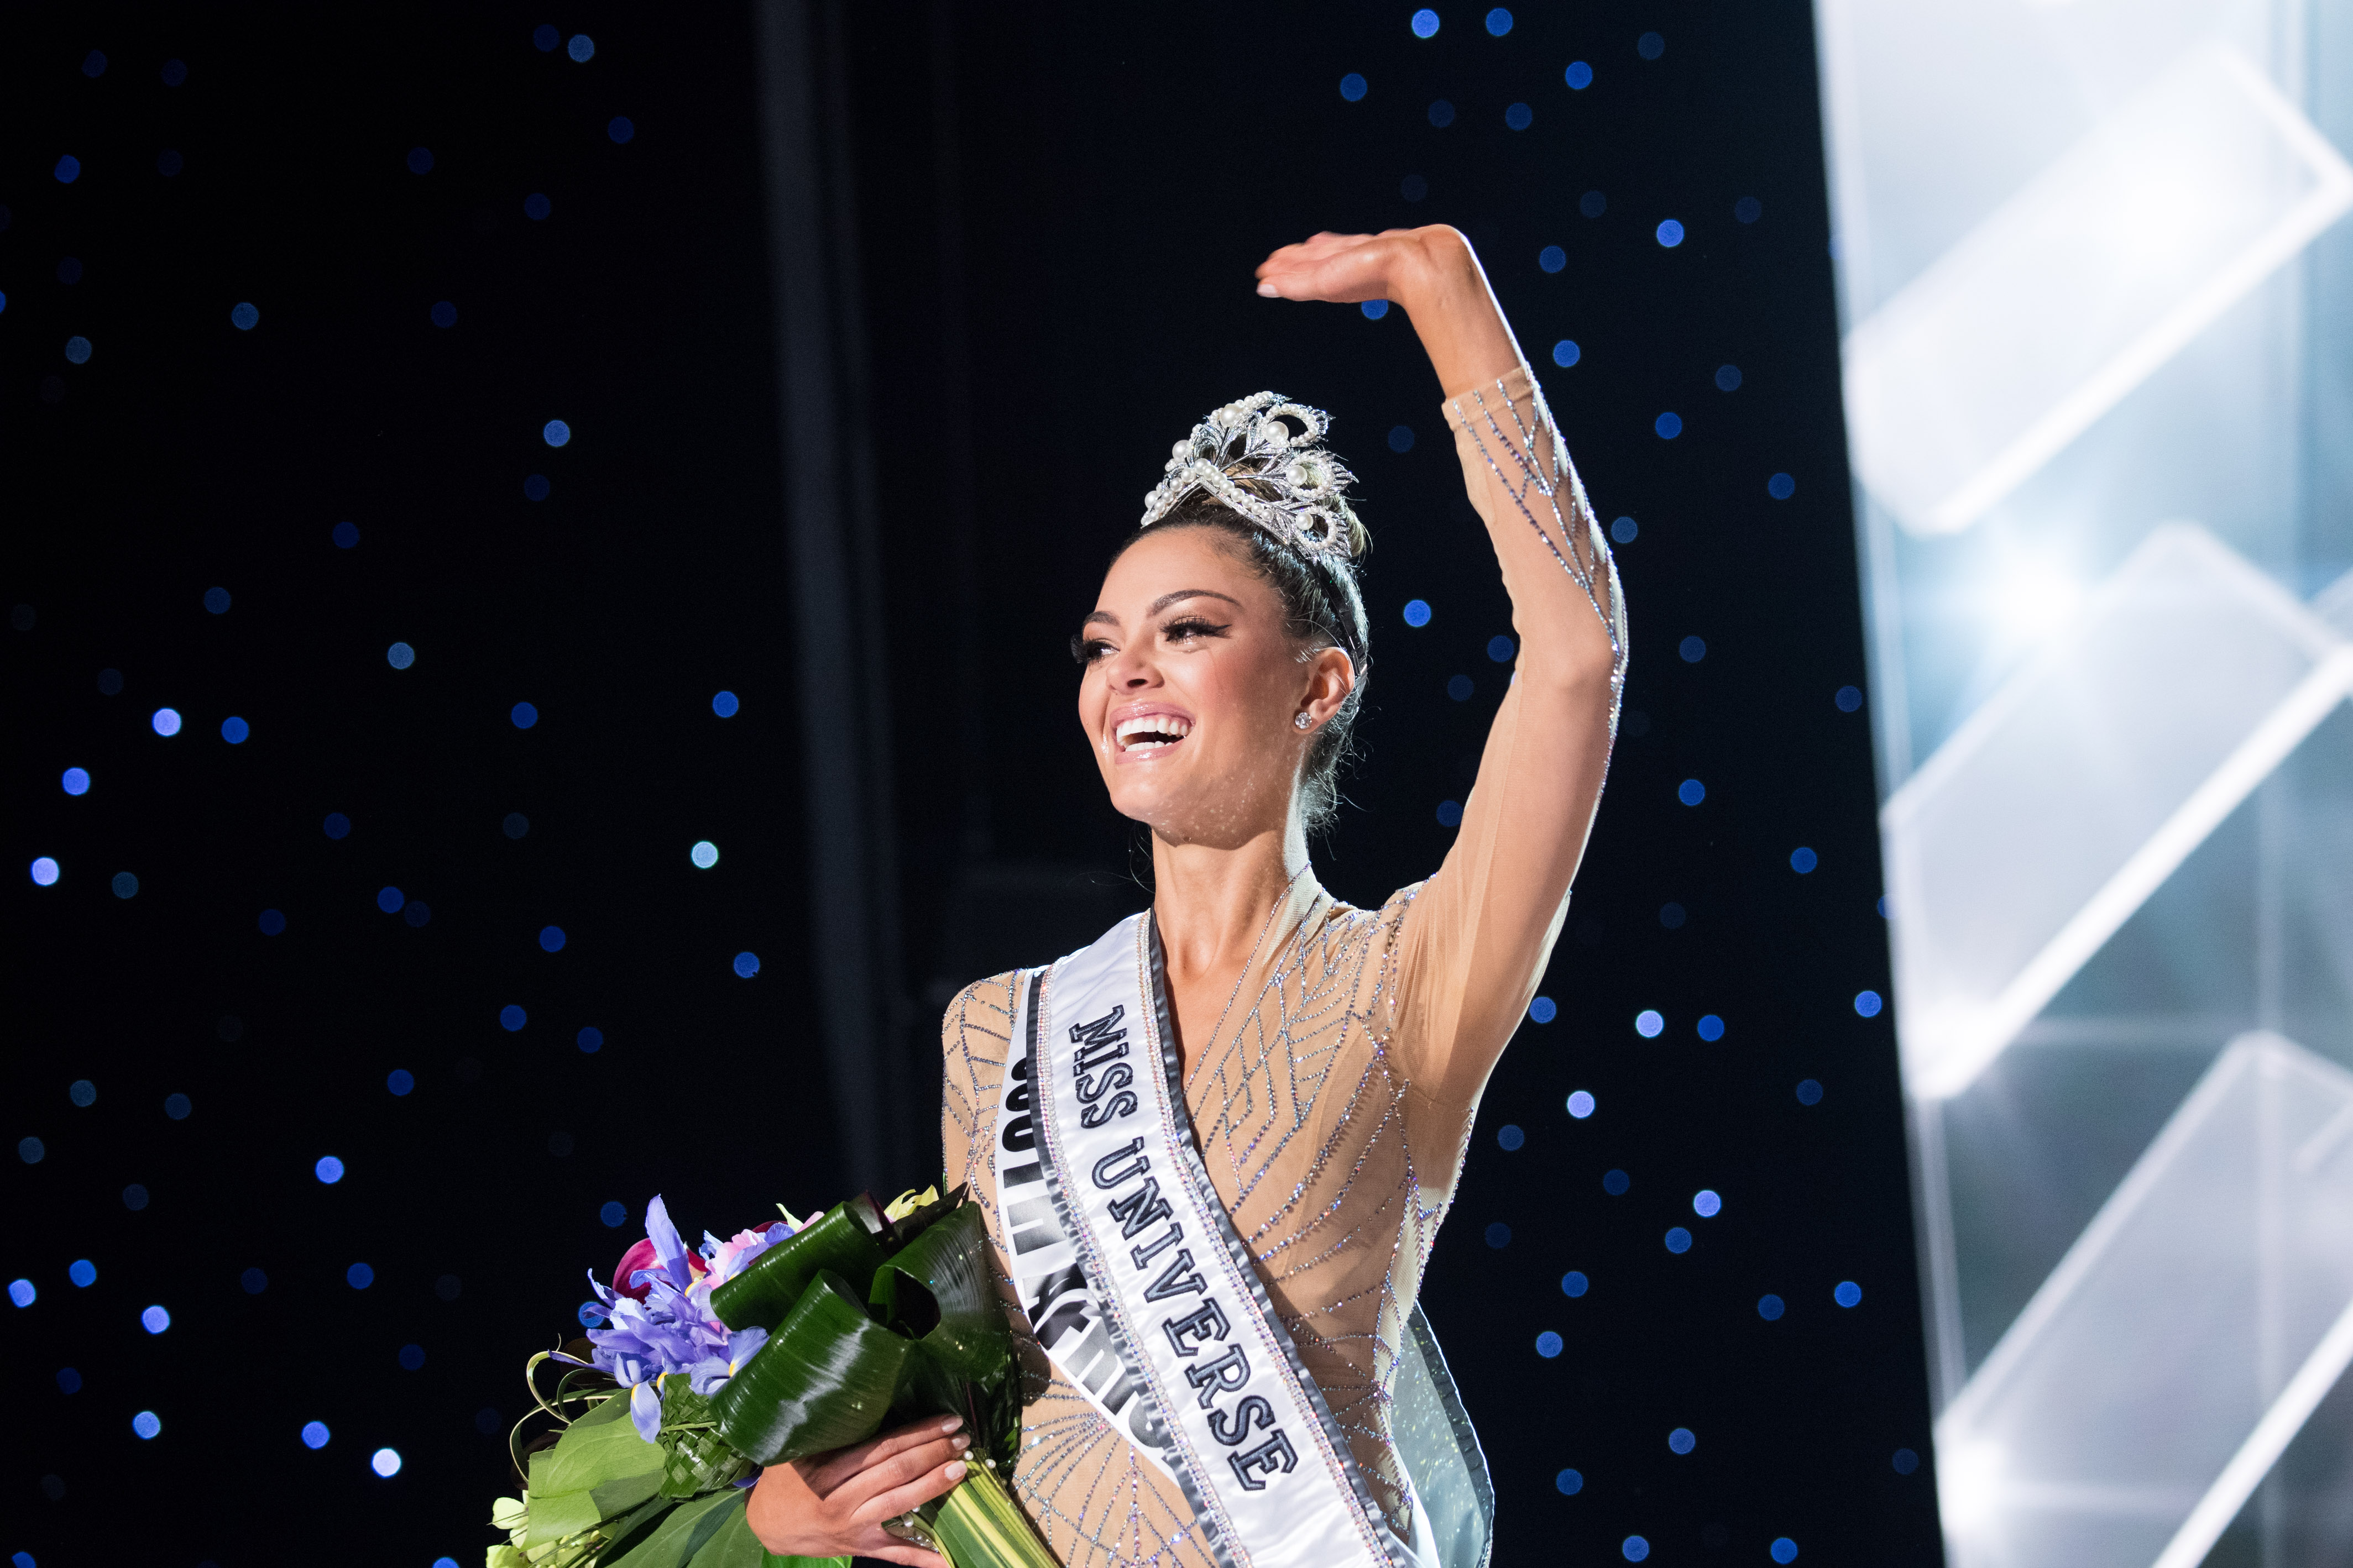 South Africa's Demi-Leigh Nel-Peters is crowned as Miss Universe 2017. Photo from the Miss Universe Organization